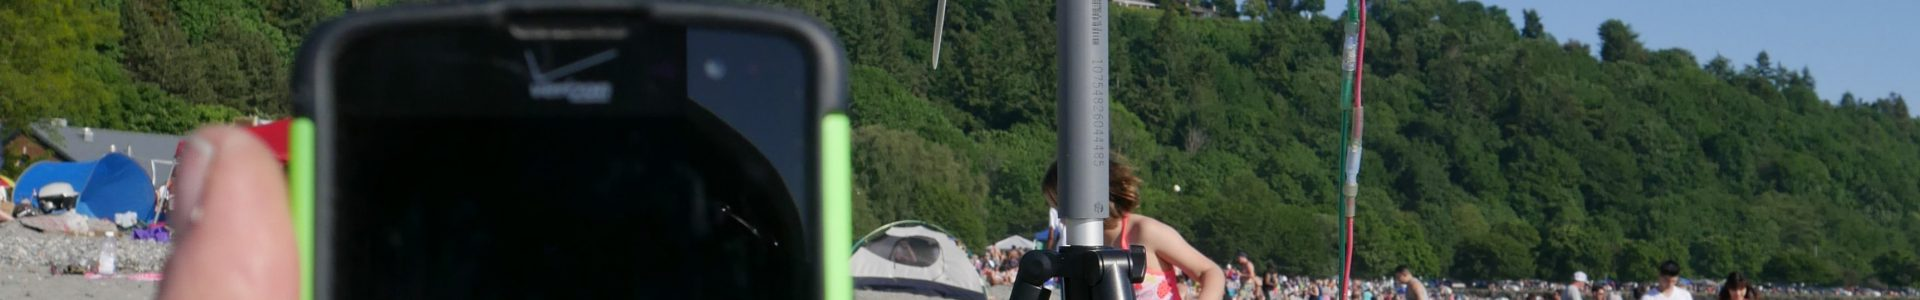 Travel Wind Turbine clean sustainable power on the go